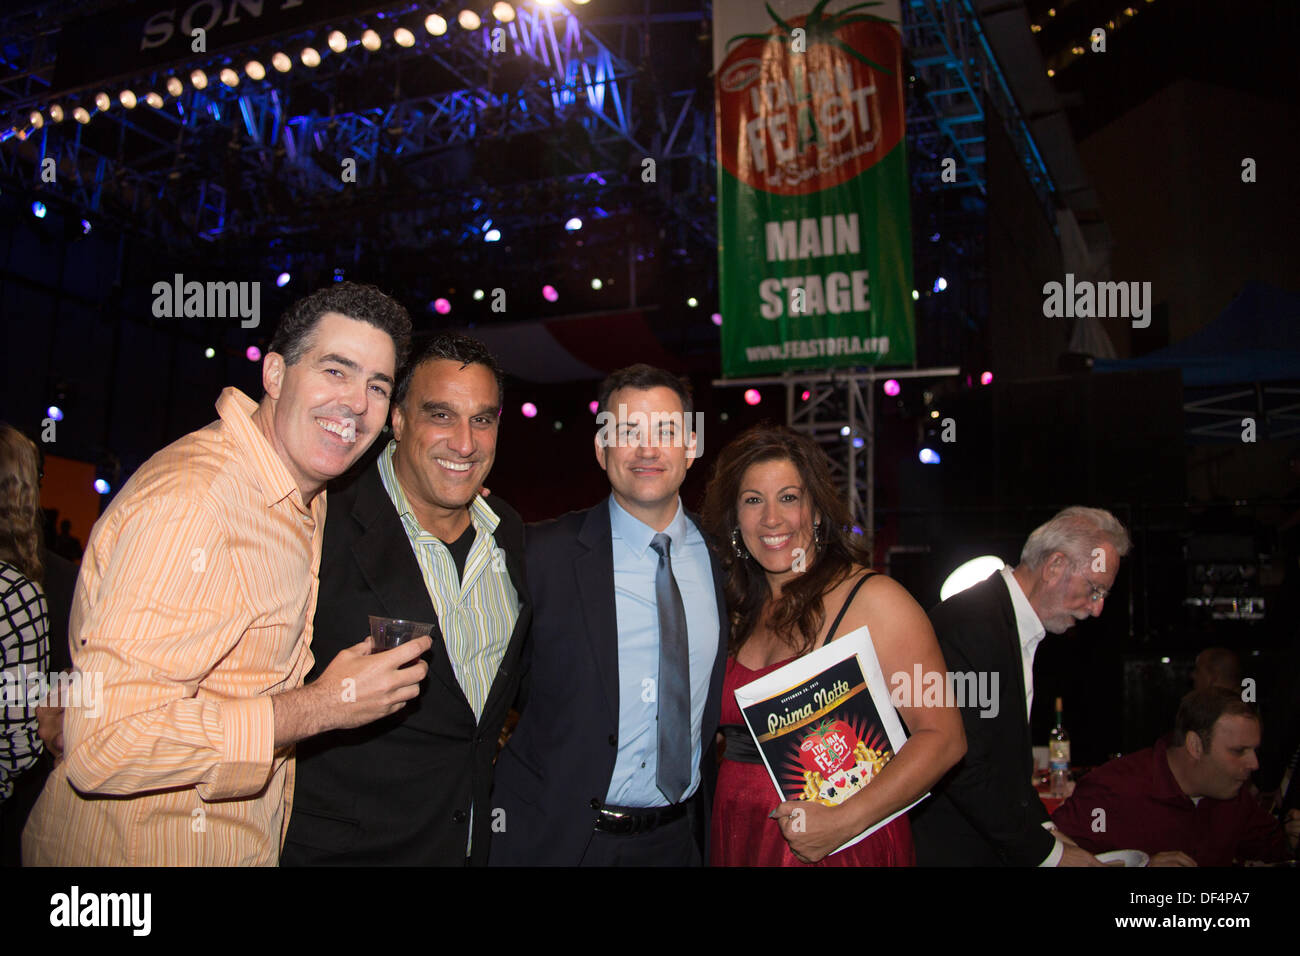 LA, CA, USA. 26th Sept, 2013. Comedian Adam Carolla, Doug DeLuca (Executive Producer, Jimmy Kimmel Live!), late night TV talk show host Jimmy Kimmel and Ann Potenza, Executive Director of the San Gennaro Foundation at the Prima Notte Gala at the Feast of San Gennaro Italian Festival in Los Angeles, CA, USA on September 26, 2013. The three men co-founded the Italian Feast of San Gennaro in Los Angeles with other notable Italian American leaders in LA in 2002. © Kayte Deioma/Alamy Live News - Stock Image